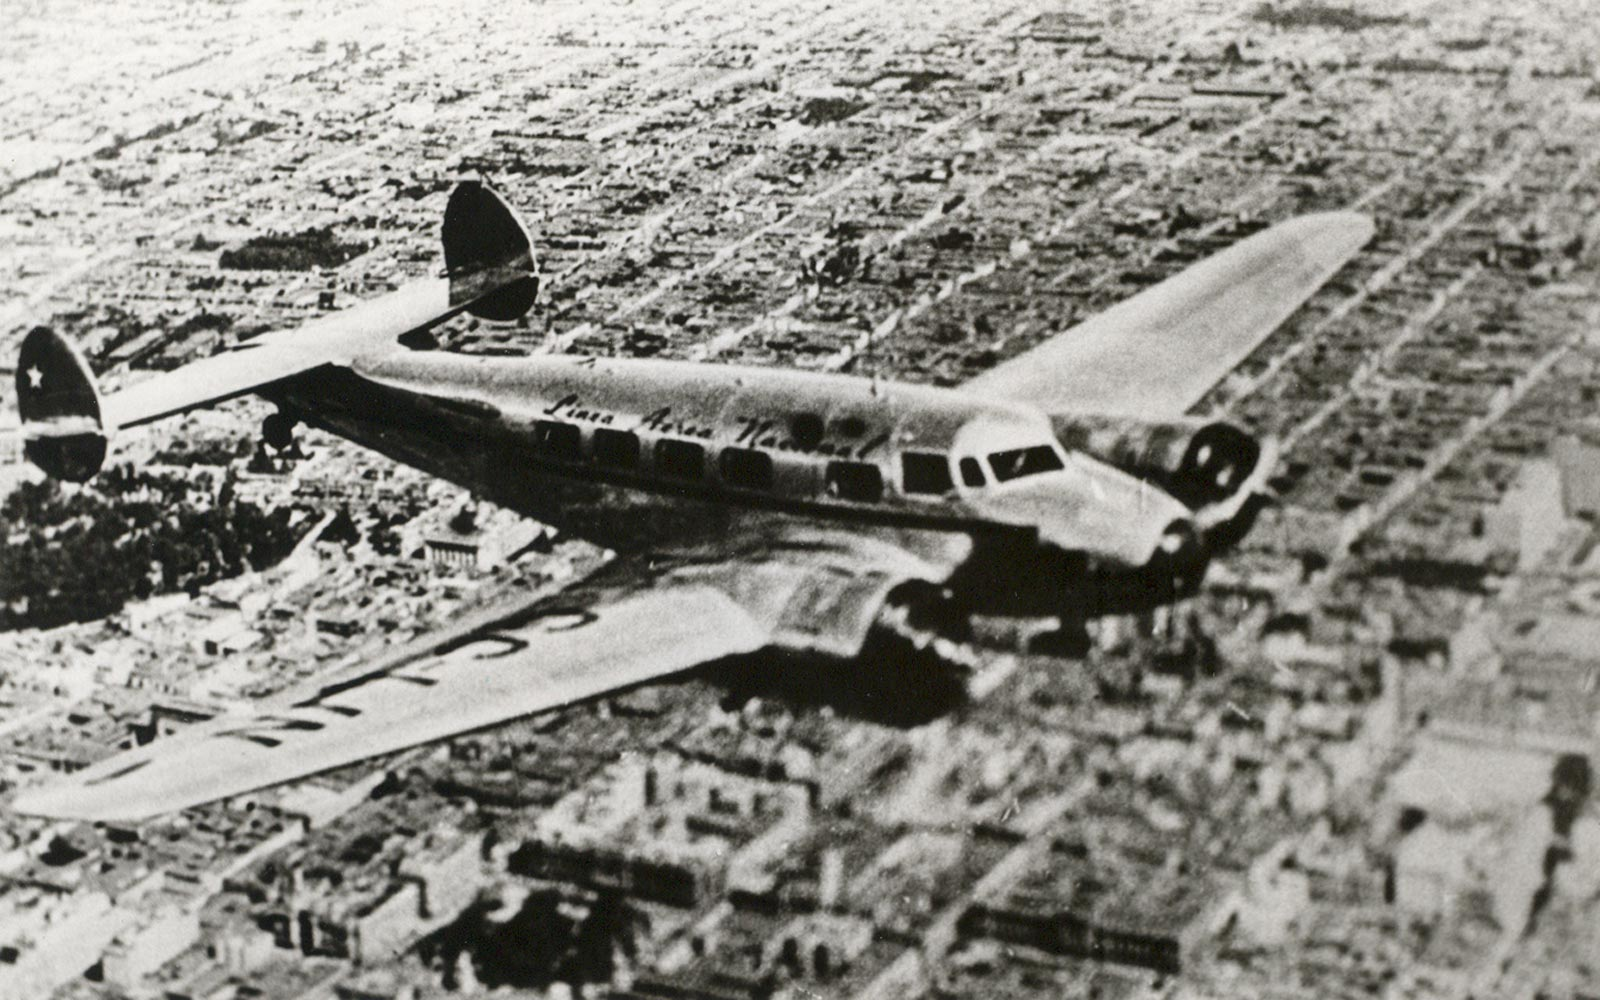 LAN airlines plane in July, 1932